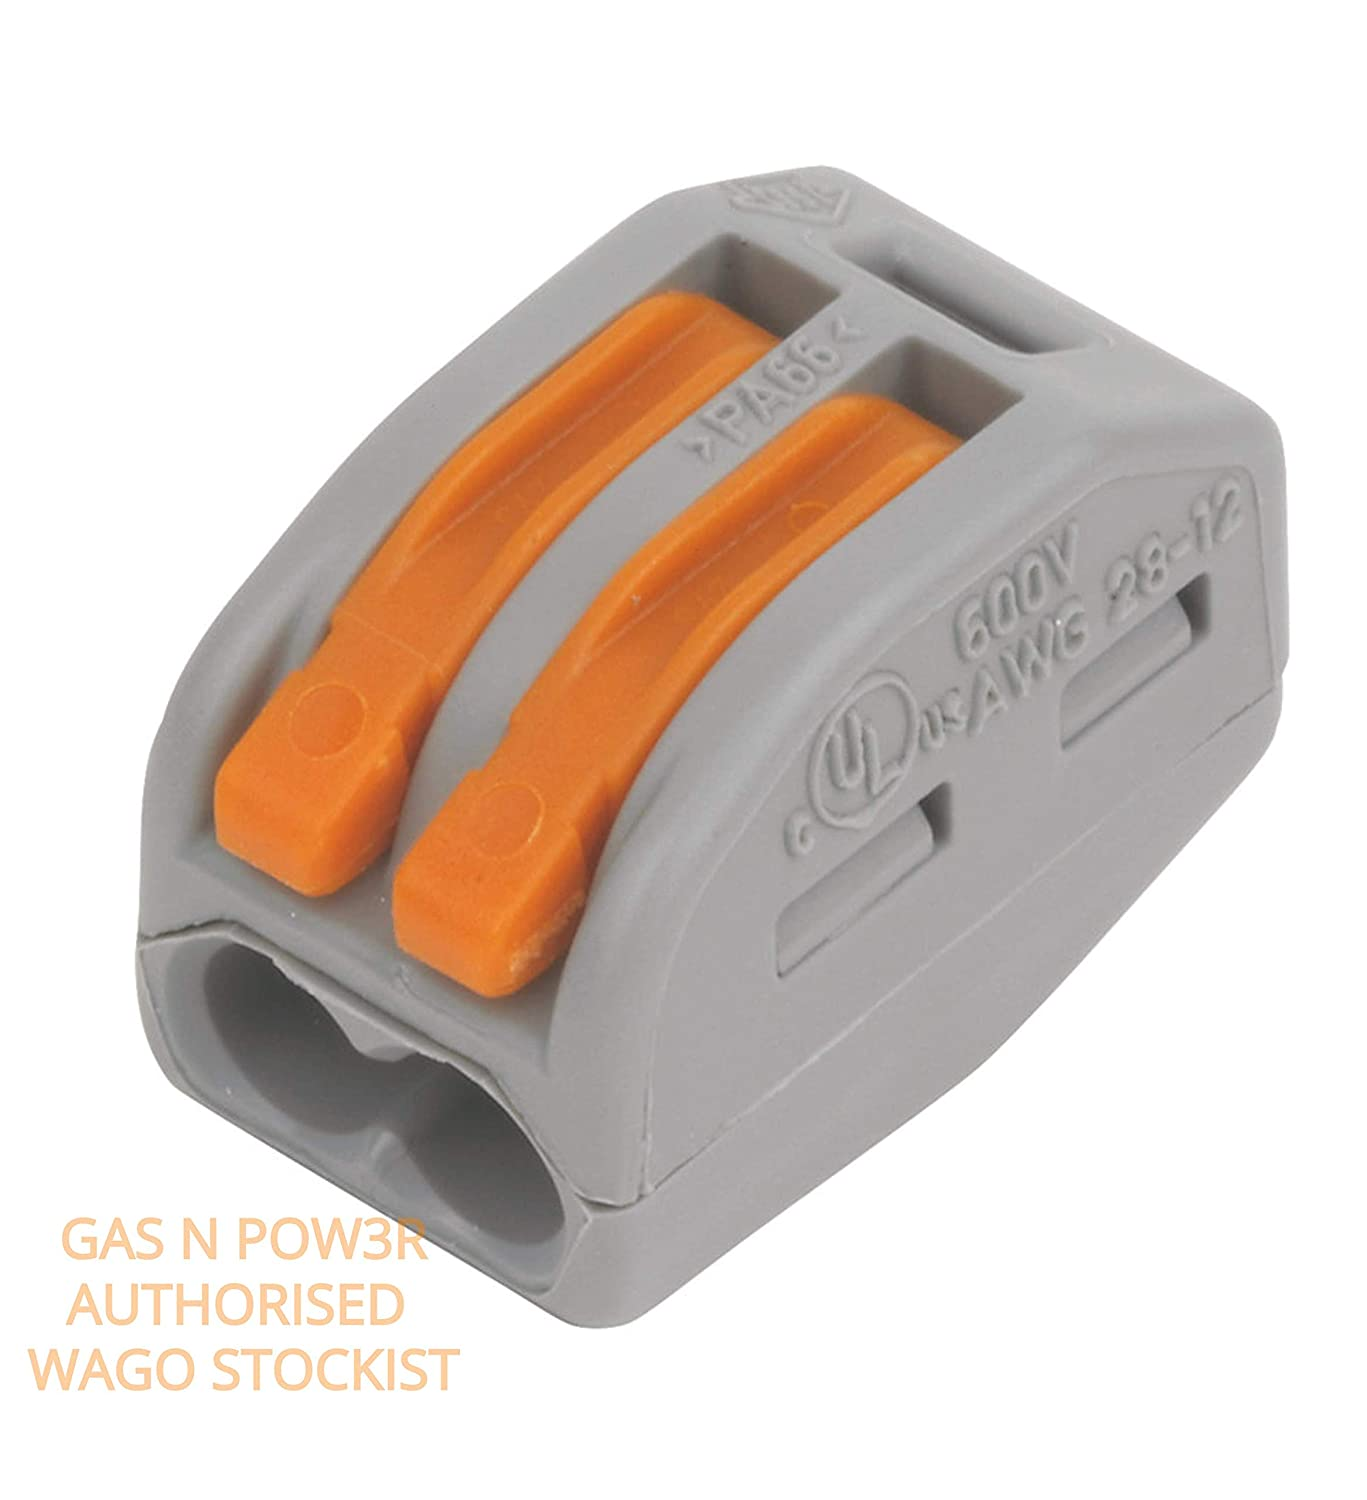 WAGO 221-412 Splicing Connector 2 Conductors 0.14-4 mm/² Compact Design with Lever by Gas N Pow3r x300